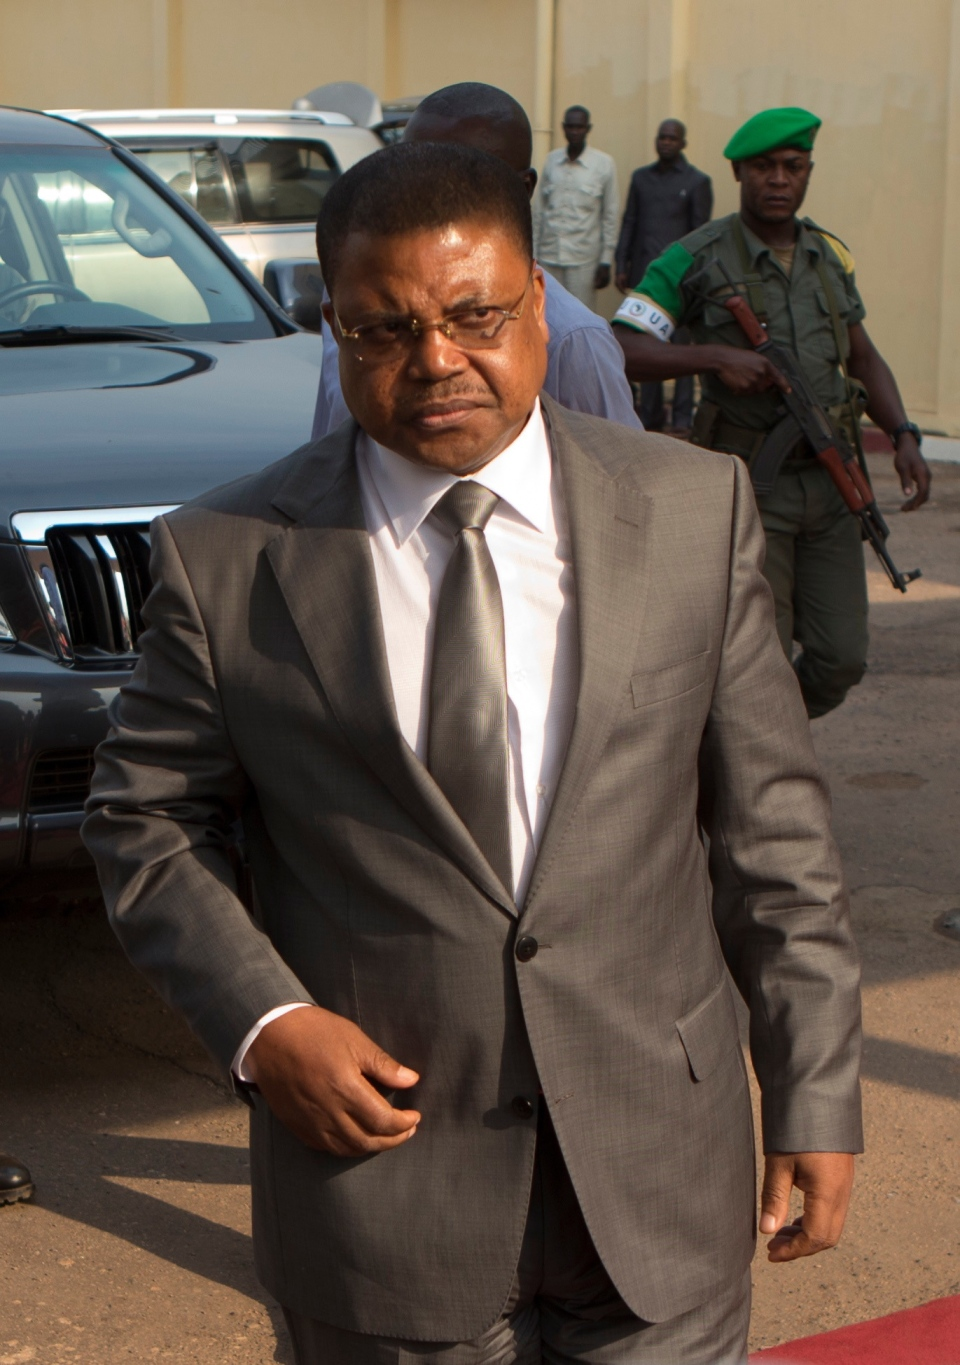 This is a Wednesday, Jan. 8, 2014 file photo of Central African Republic Prime Minister Nicolas Tiangaye as he arrives at Mpoko Airport, in Bangui, Central African Republic. (AP / Rebecca Blackwell)